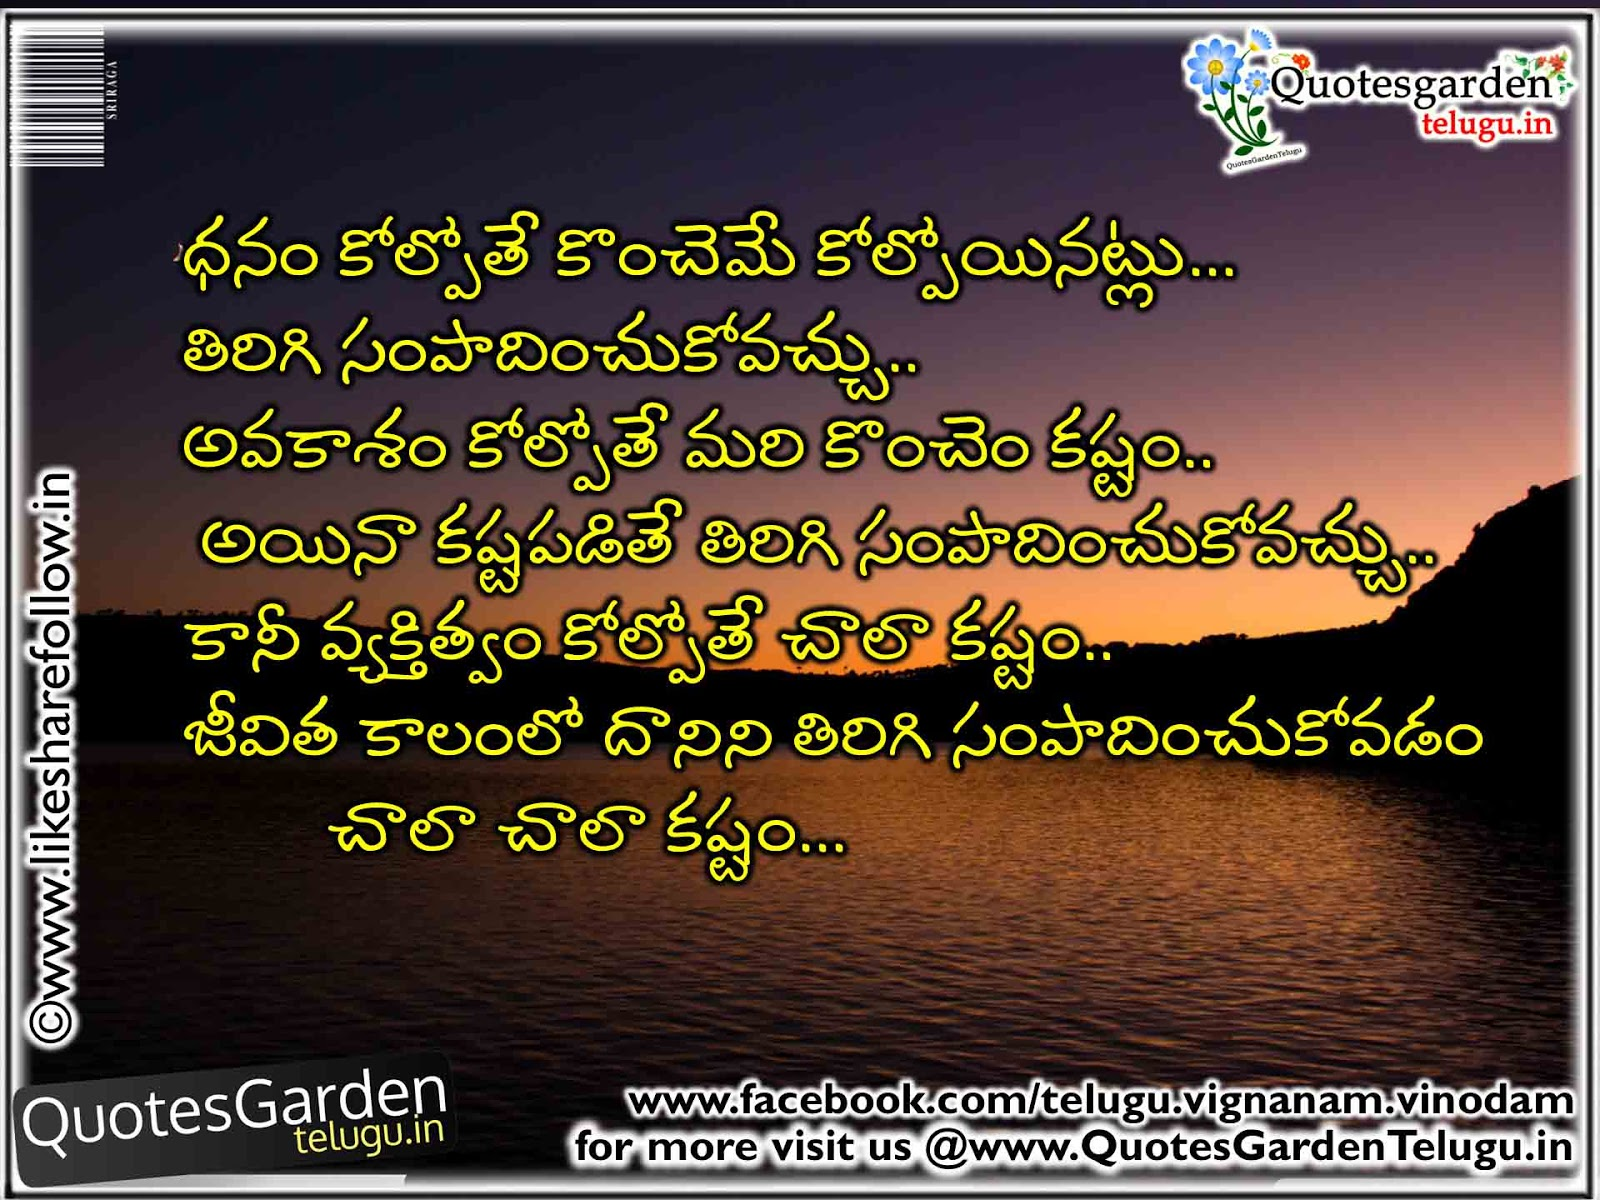 Inspirational Quotes Of Swami Vivekananda In Telugu Quotes Garden